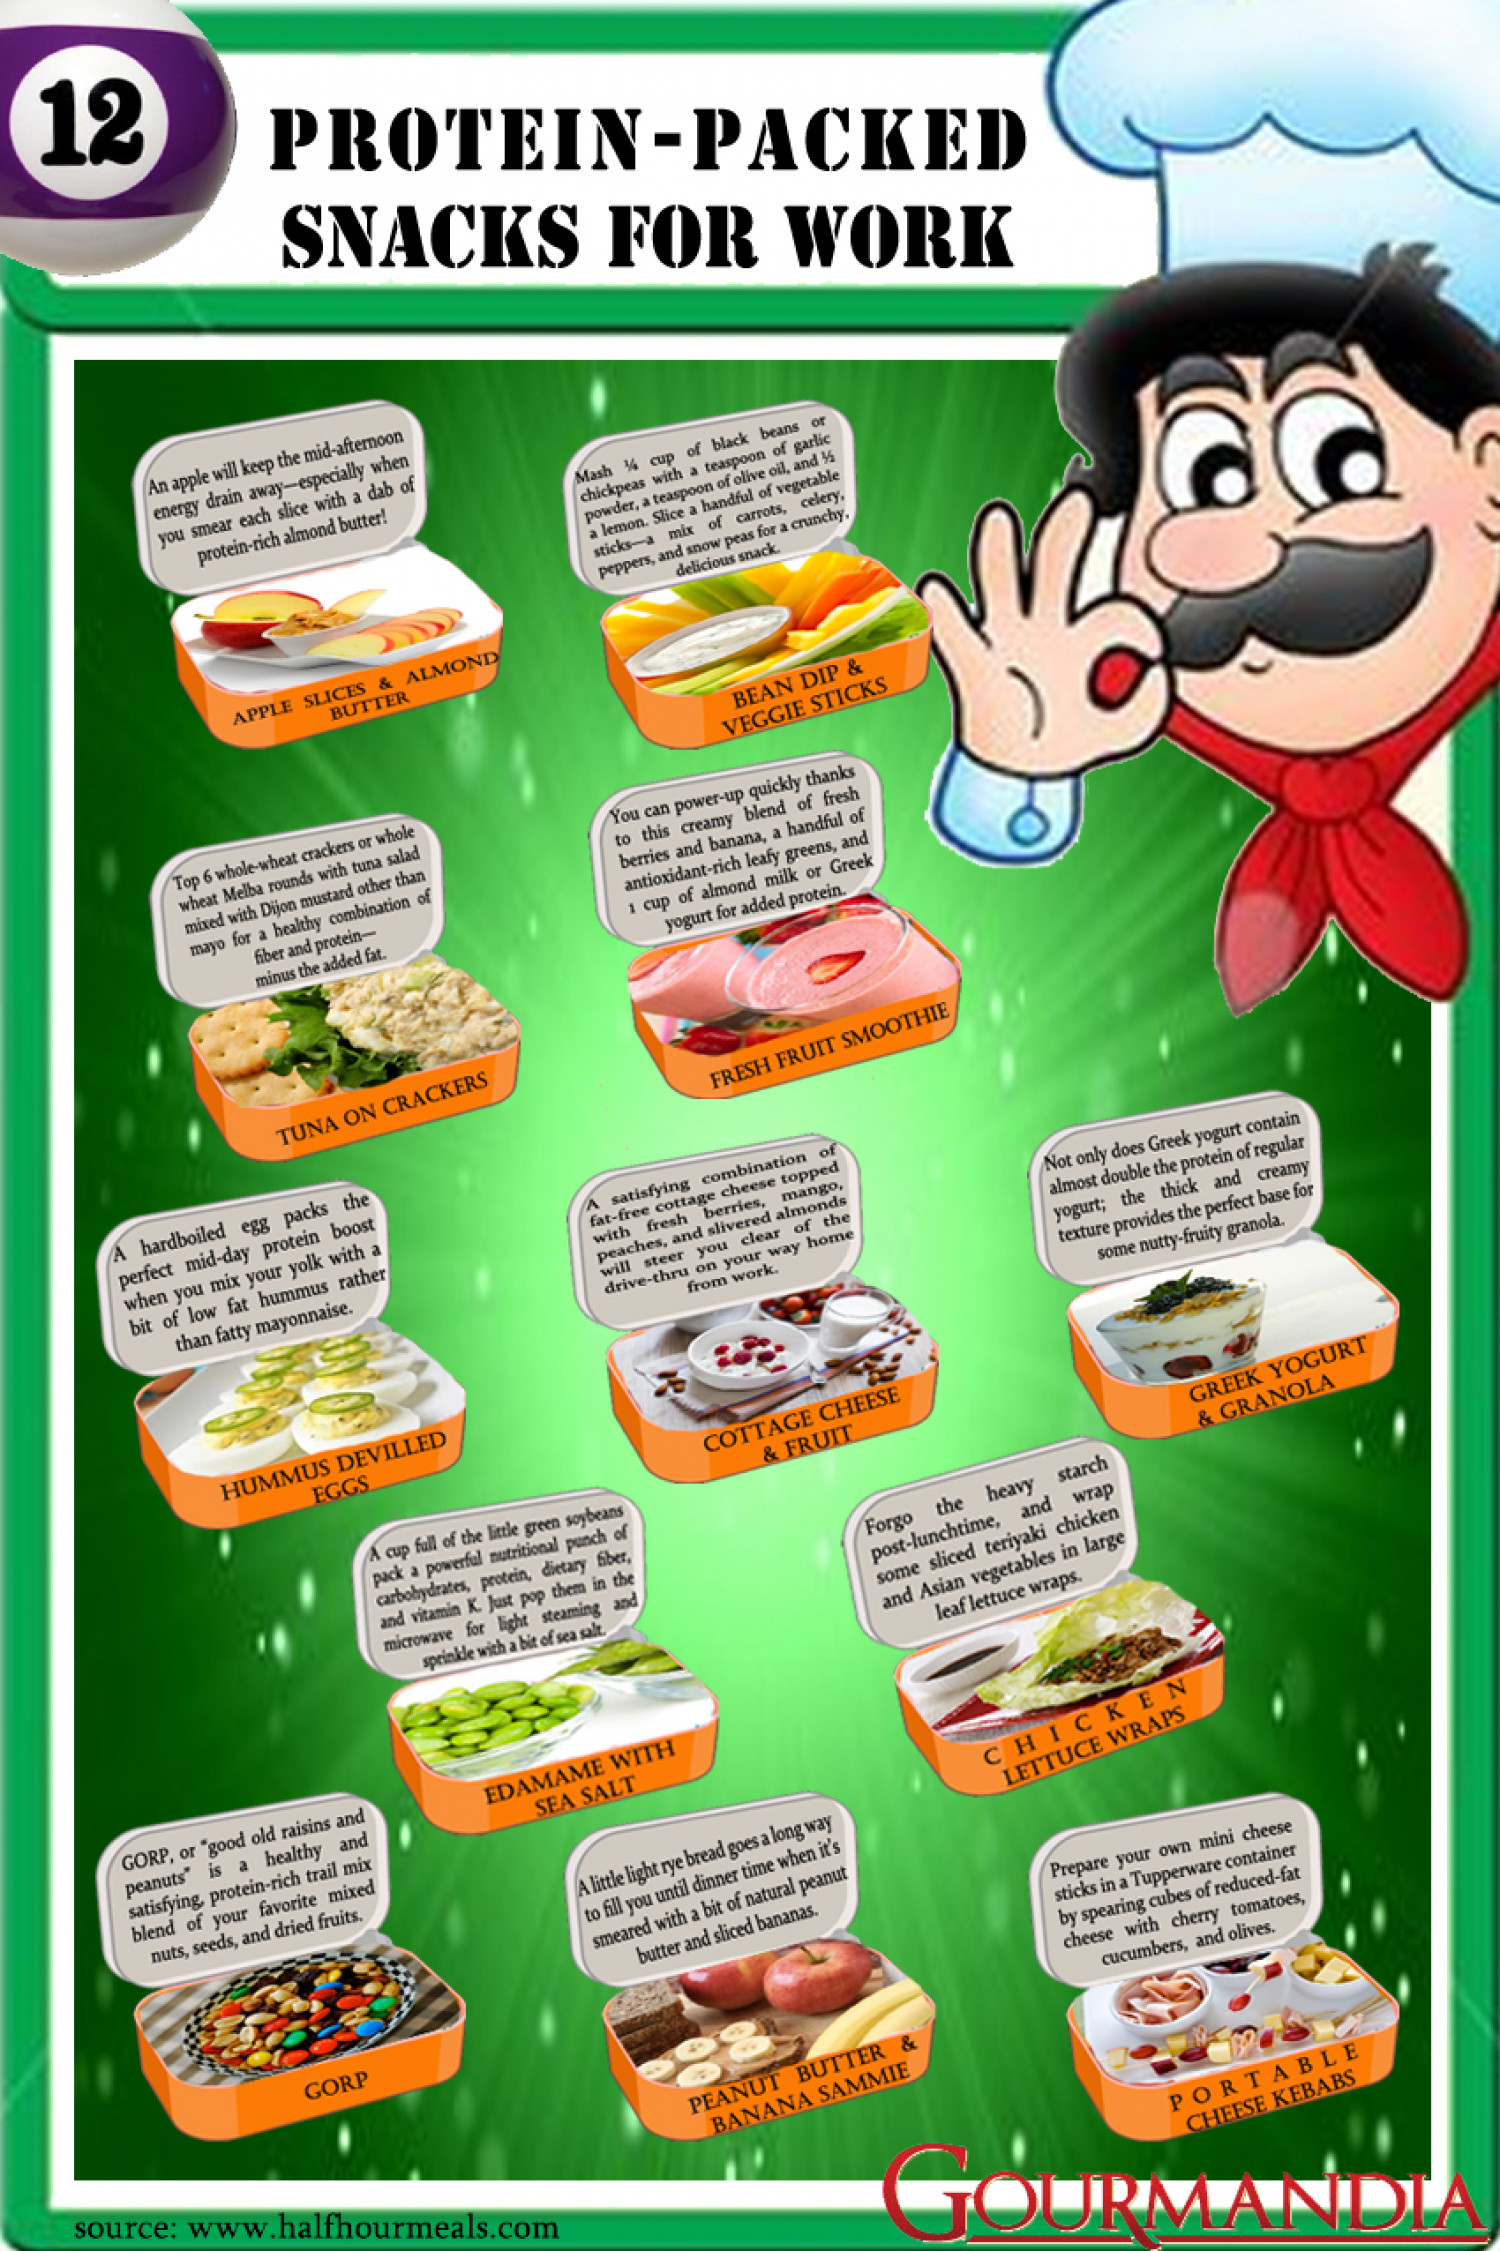 12 Protein-Packed Snacks For Work Infographic